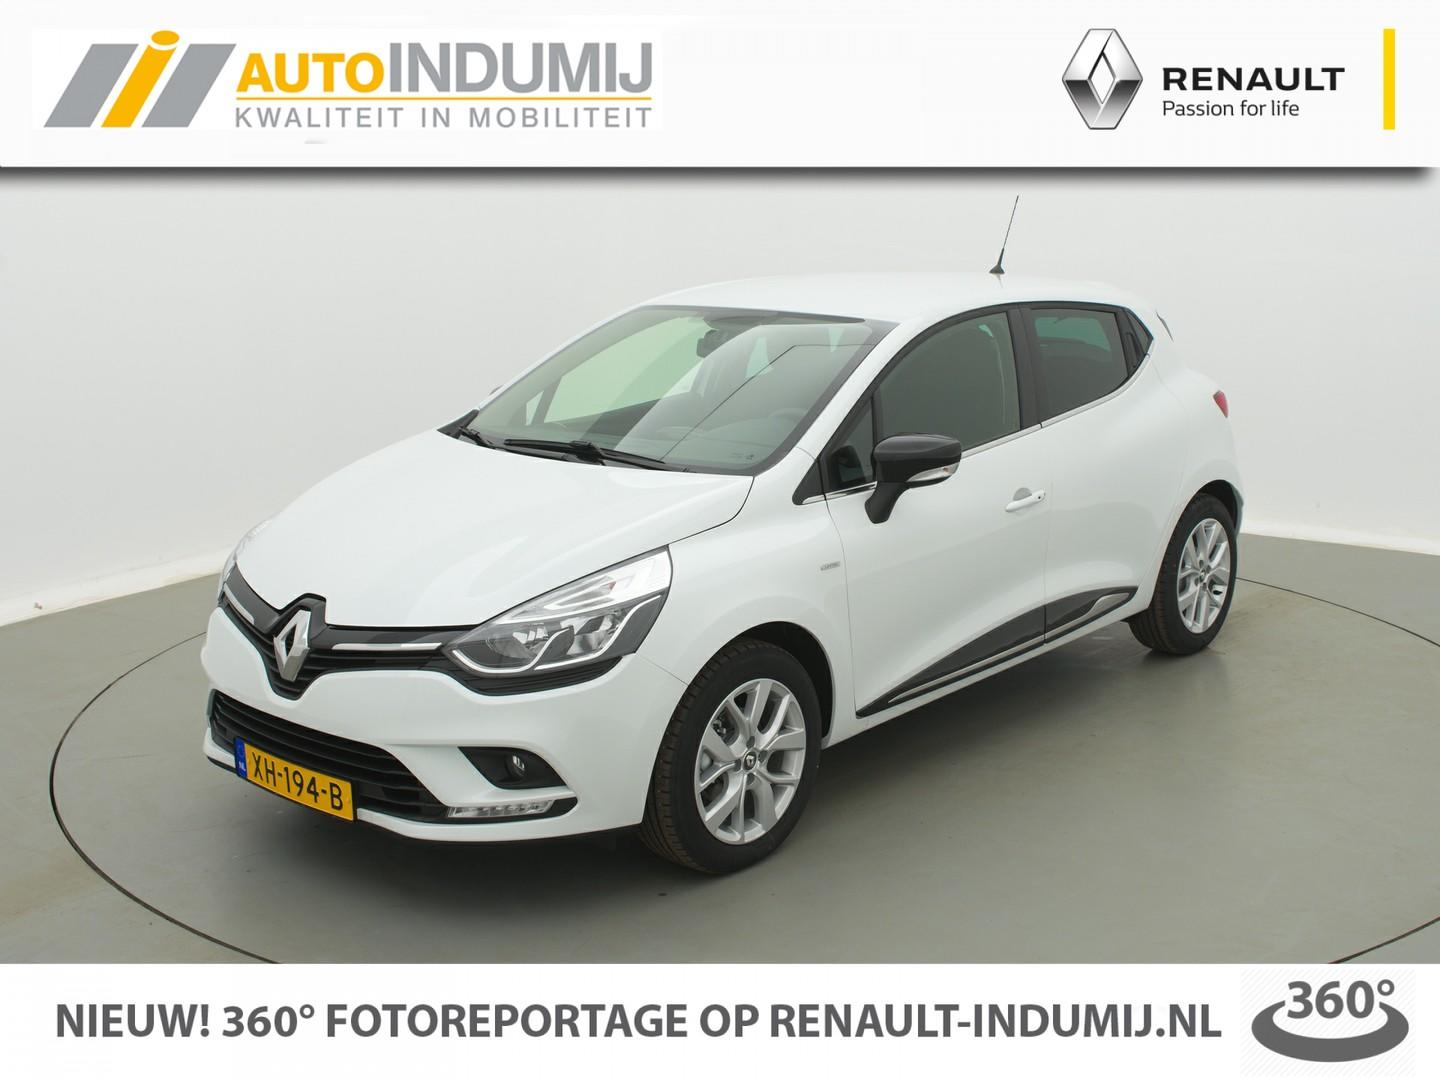 Renault Clio Tce 90 limited // airco // navi // pdc // keyless